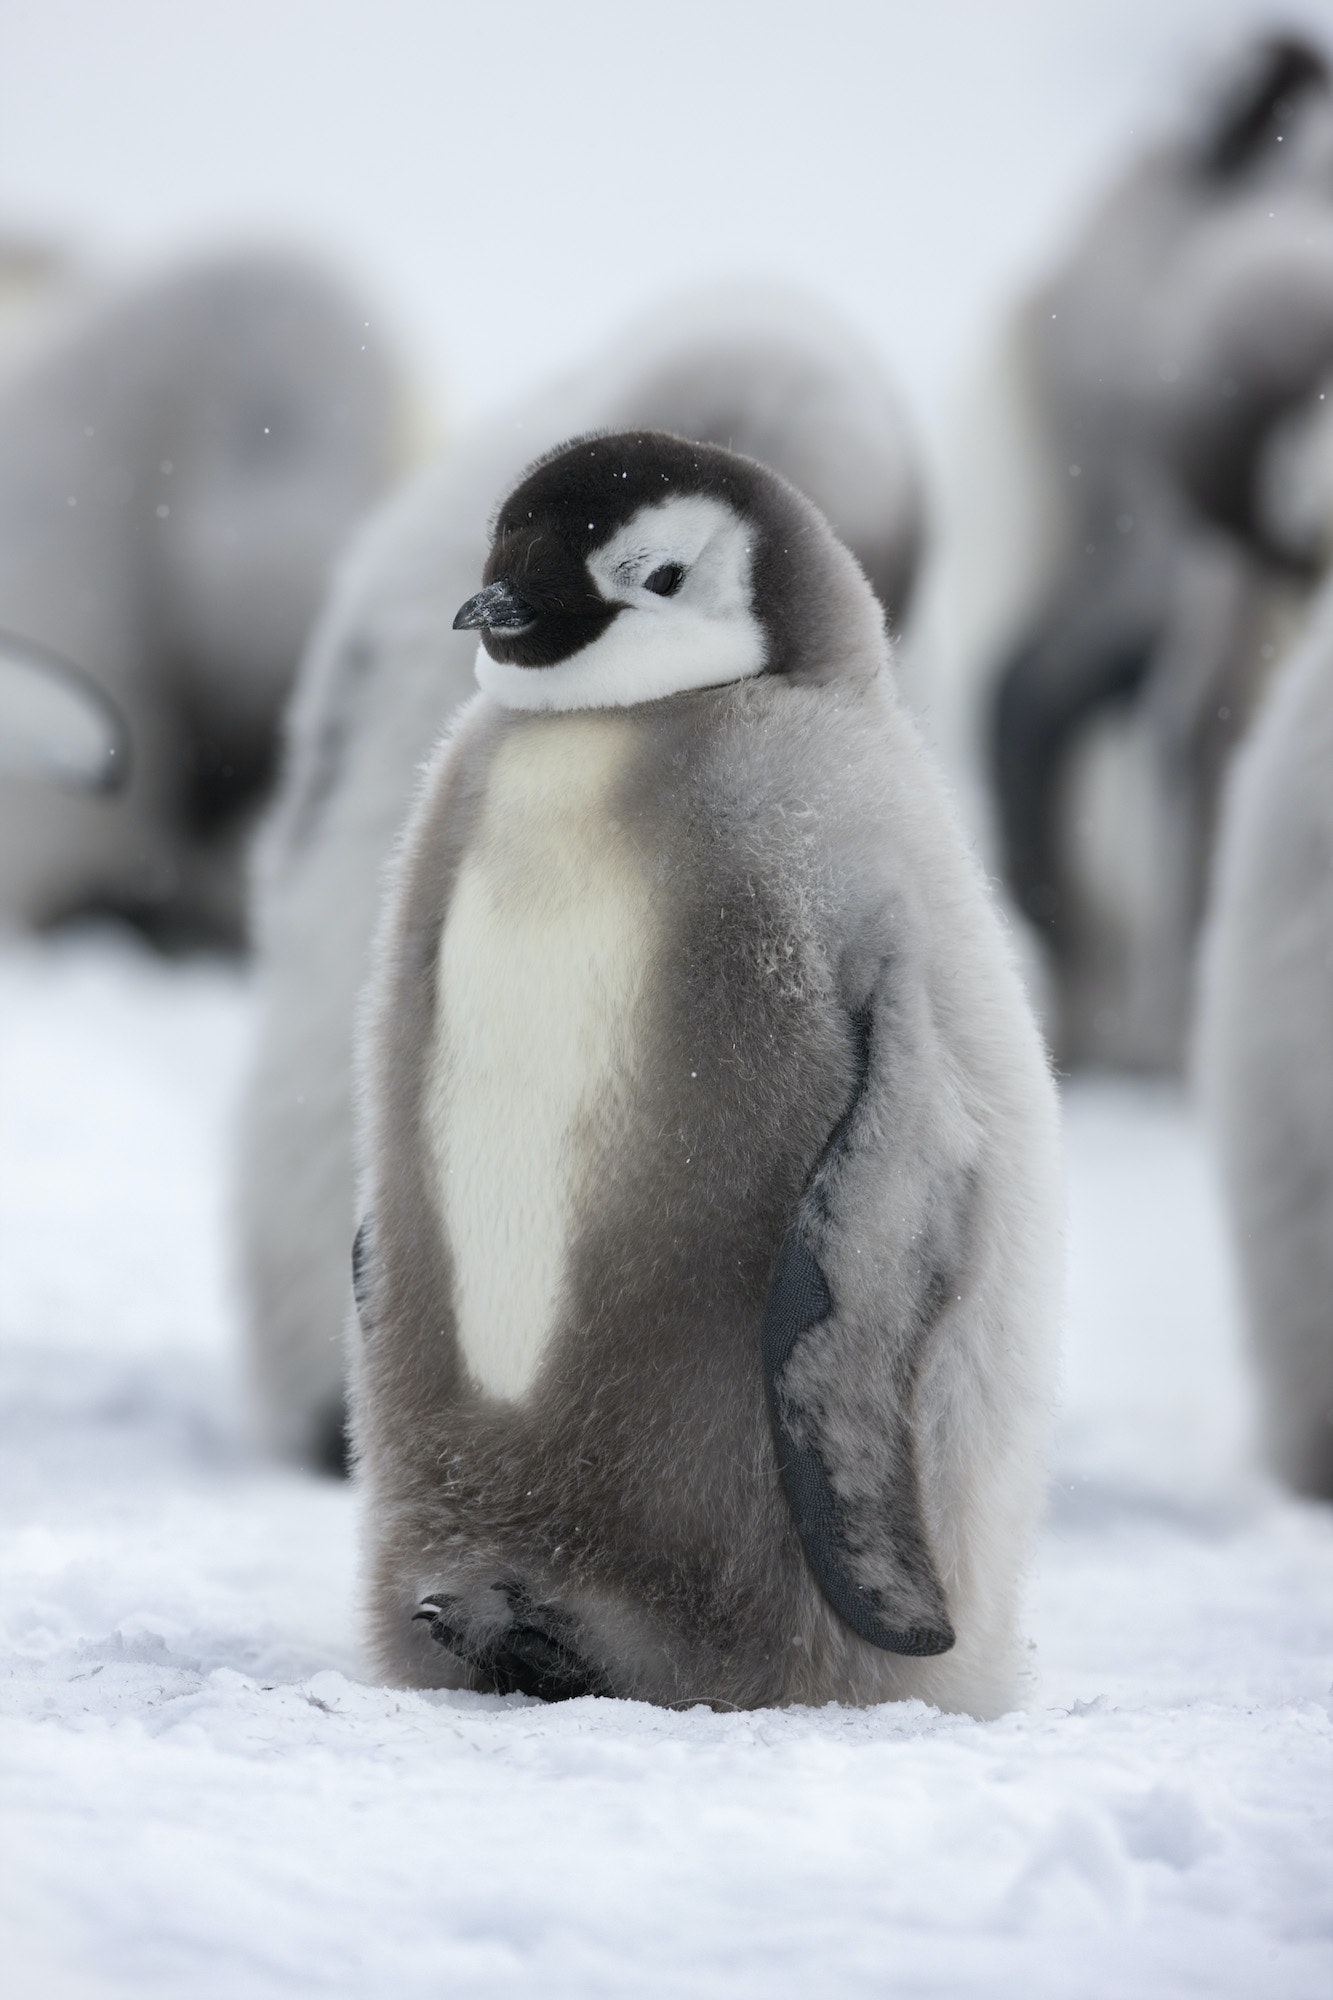 Scientists are concerned that as climate change progresses, emperor penguins may not find enough food to build up the body fat to stay warm.